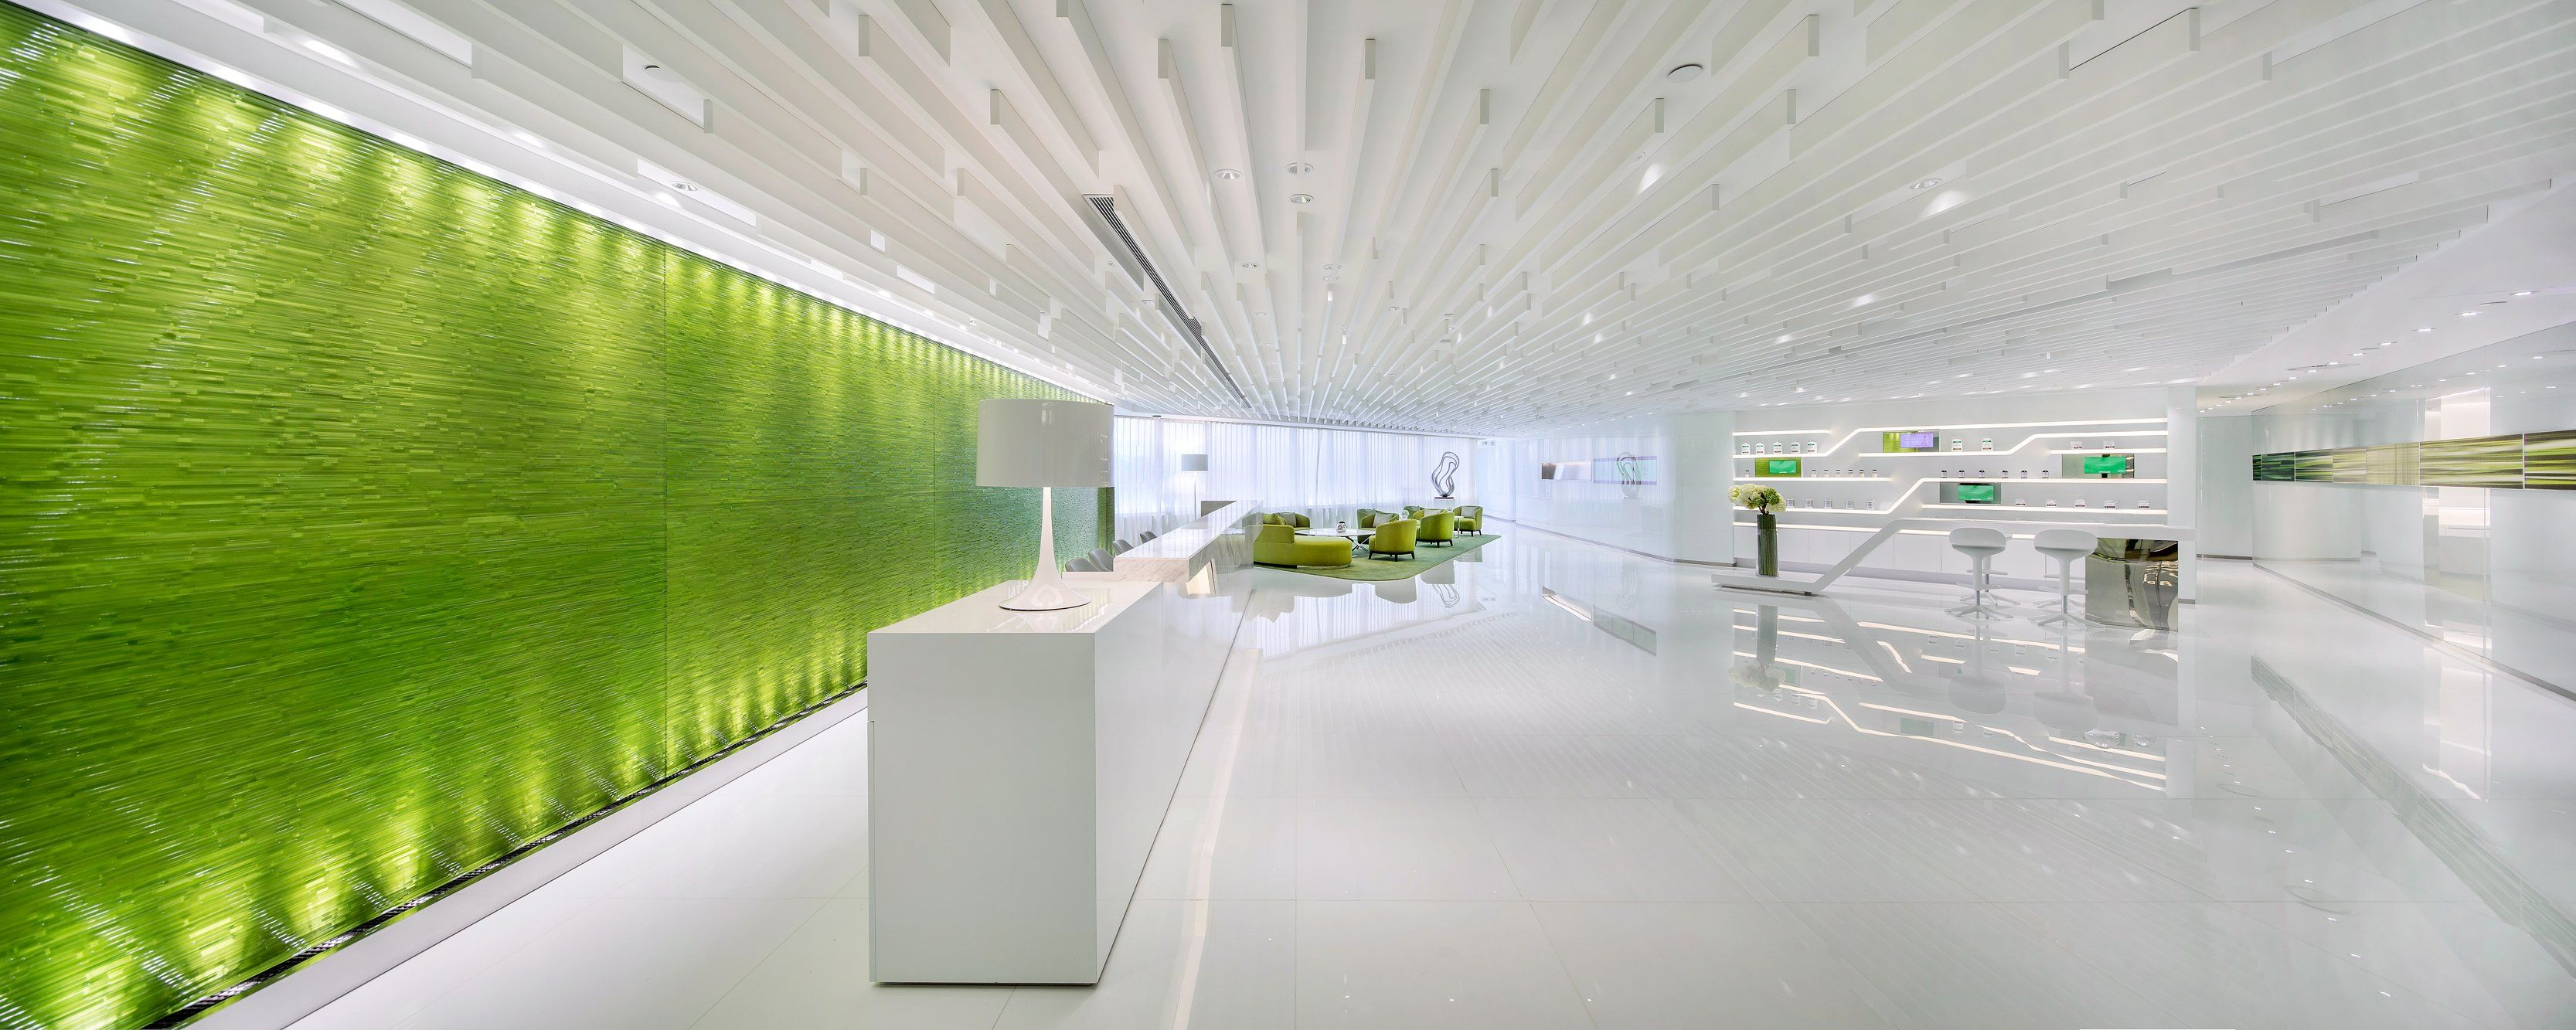 Neo derm medical aesthetic center in hong kong favorite for Interior design company